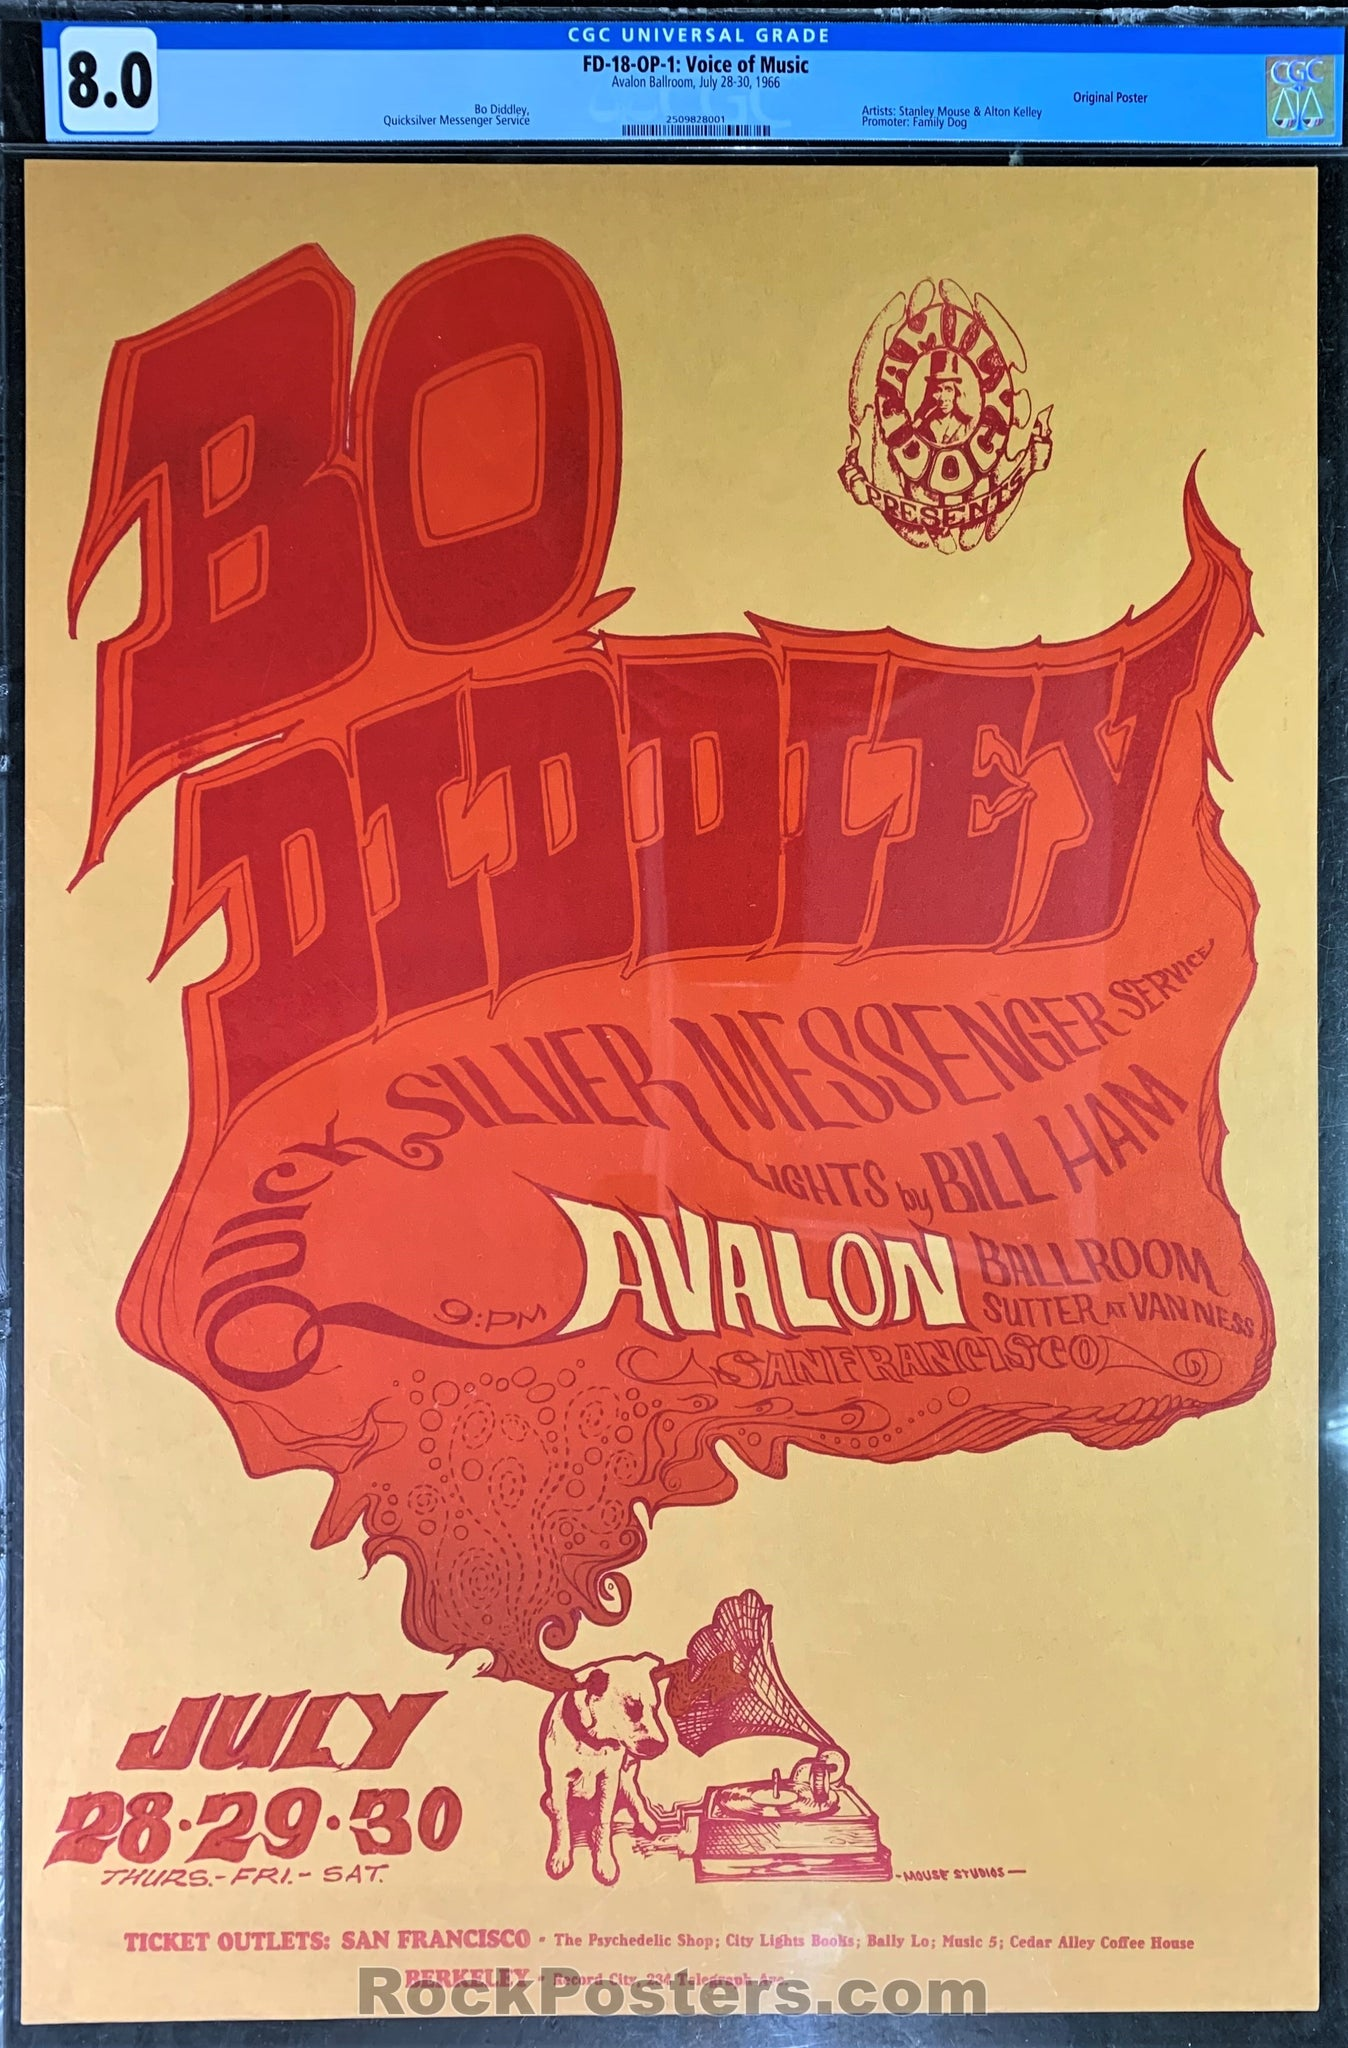 AUCTION - FD-18 - Bo Diddley - 1966 Poster - Avalon Ballroom - CGC Graded 8.0